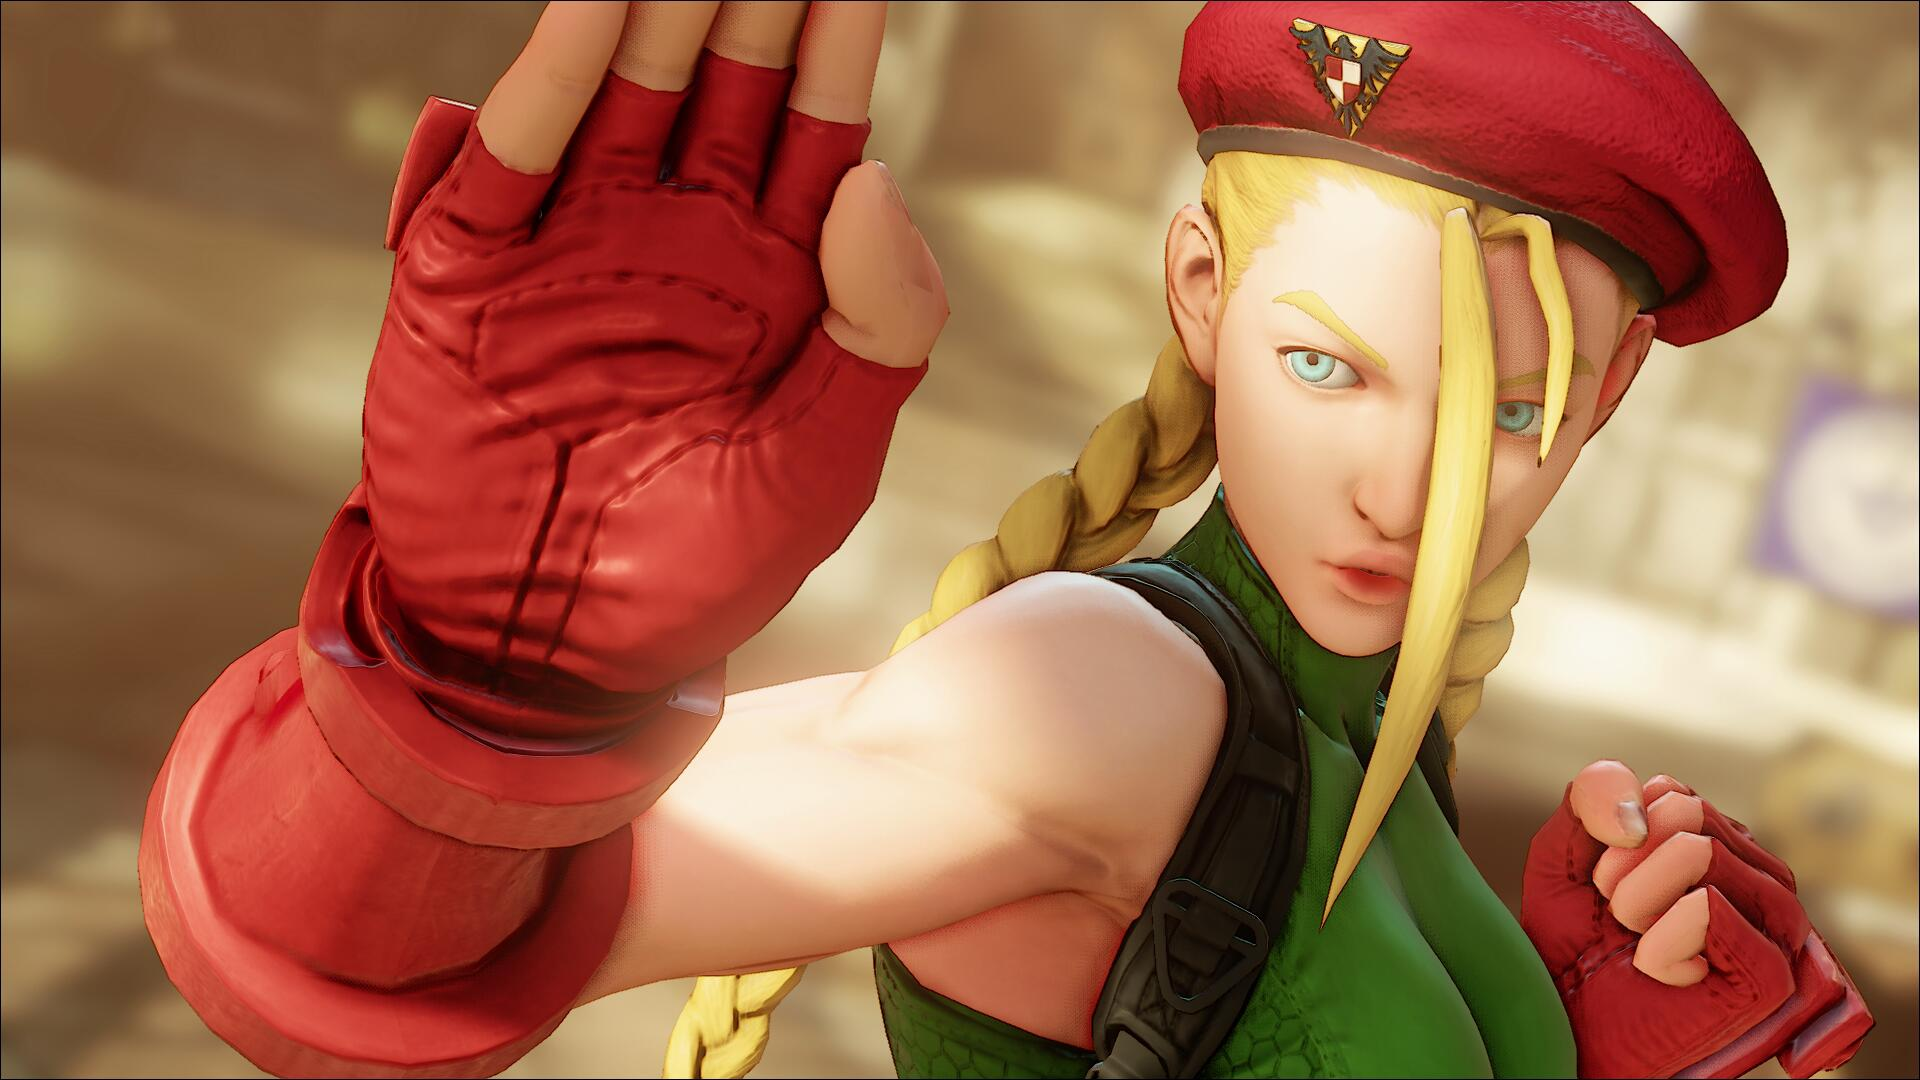 High-Profile Street Fighter Player Banned Amid Wave of Allegations in Fighting Game Community [Correction]